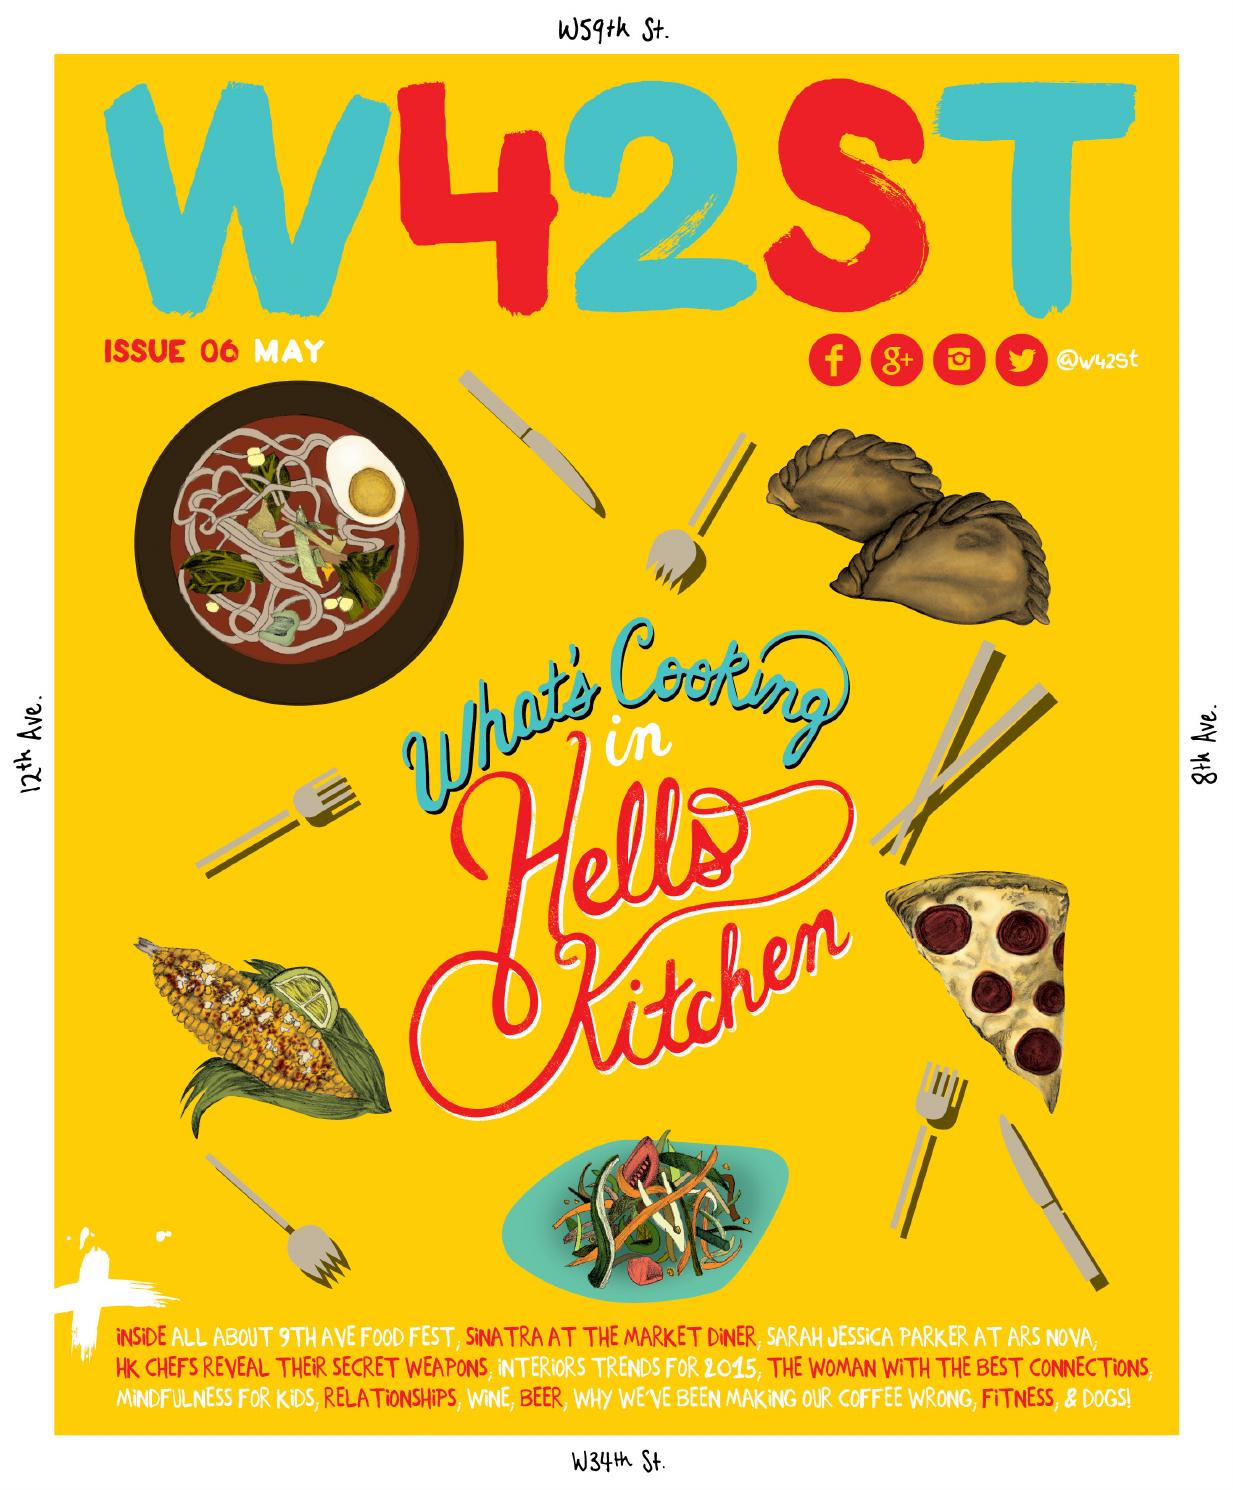 W42st Magazine Issue 6 Whats Cooking In Hells Kitchen By Nova Laboratories Shirt 80s Movies Short Circuit Tshirt Issuu